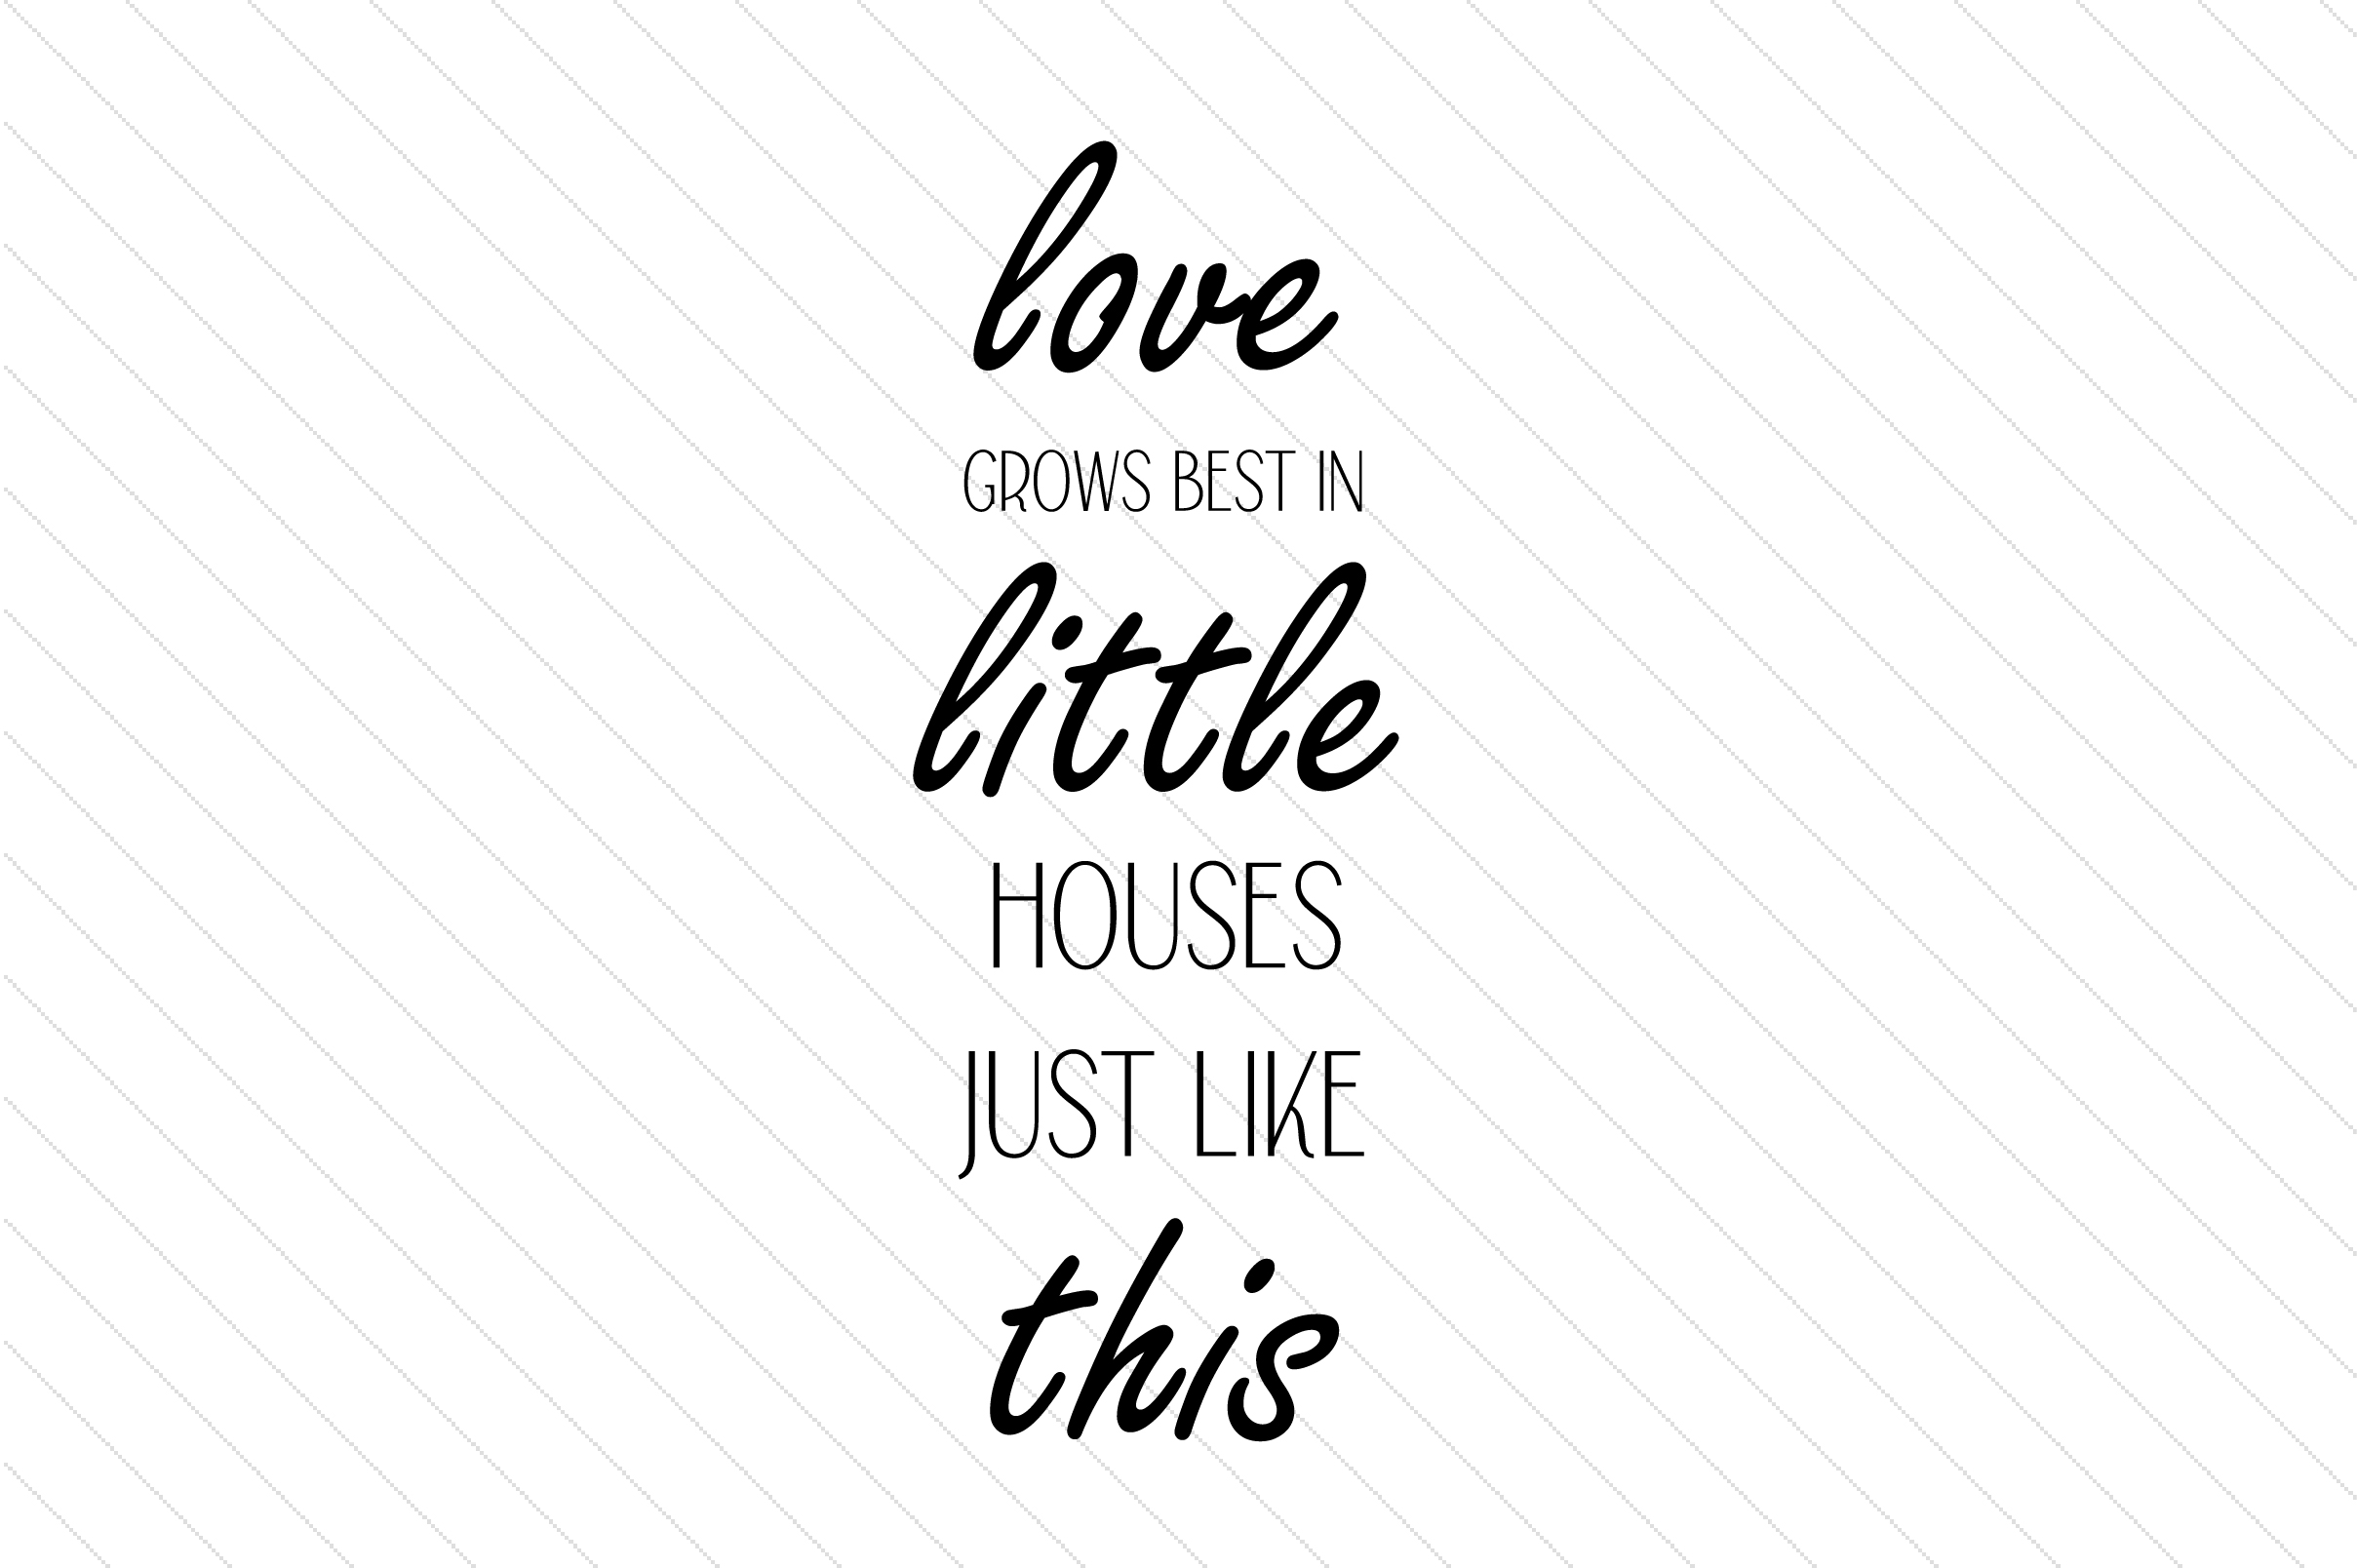 Download Free Love Grows Best In Little Houses Just Like This Svg Cut File By for Cricut Explore, Silhouette and other cutting machines.